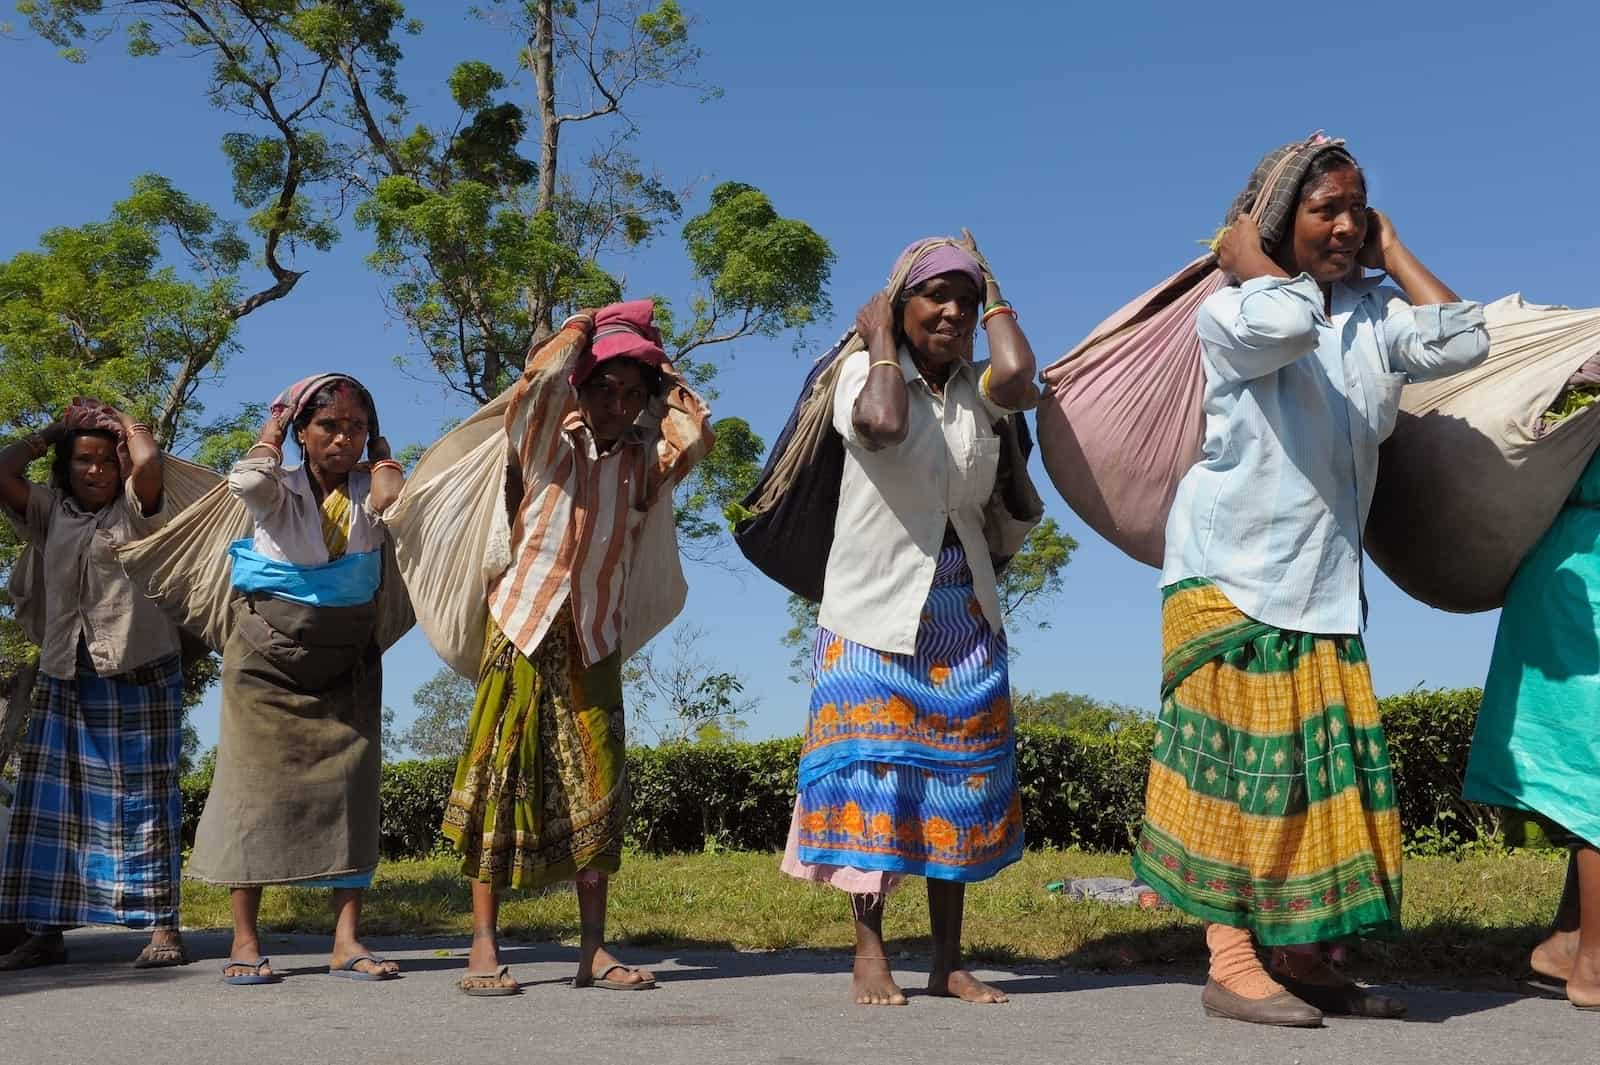 Women stand outside in a line carrying heavy bags full of tea leaves, the most popular drink in the world, strapped to their heads. They wear colorfully patterned skirts and shirts.